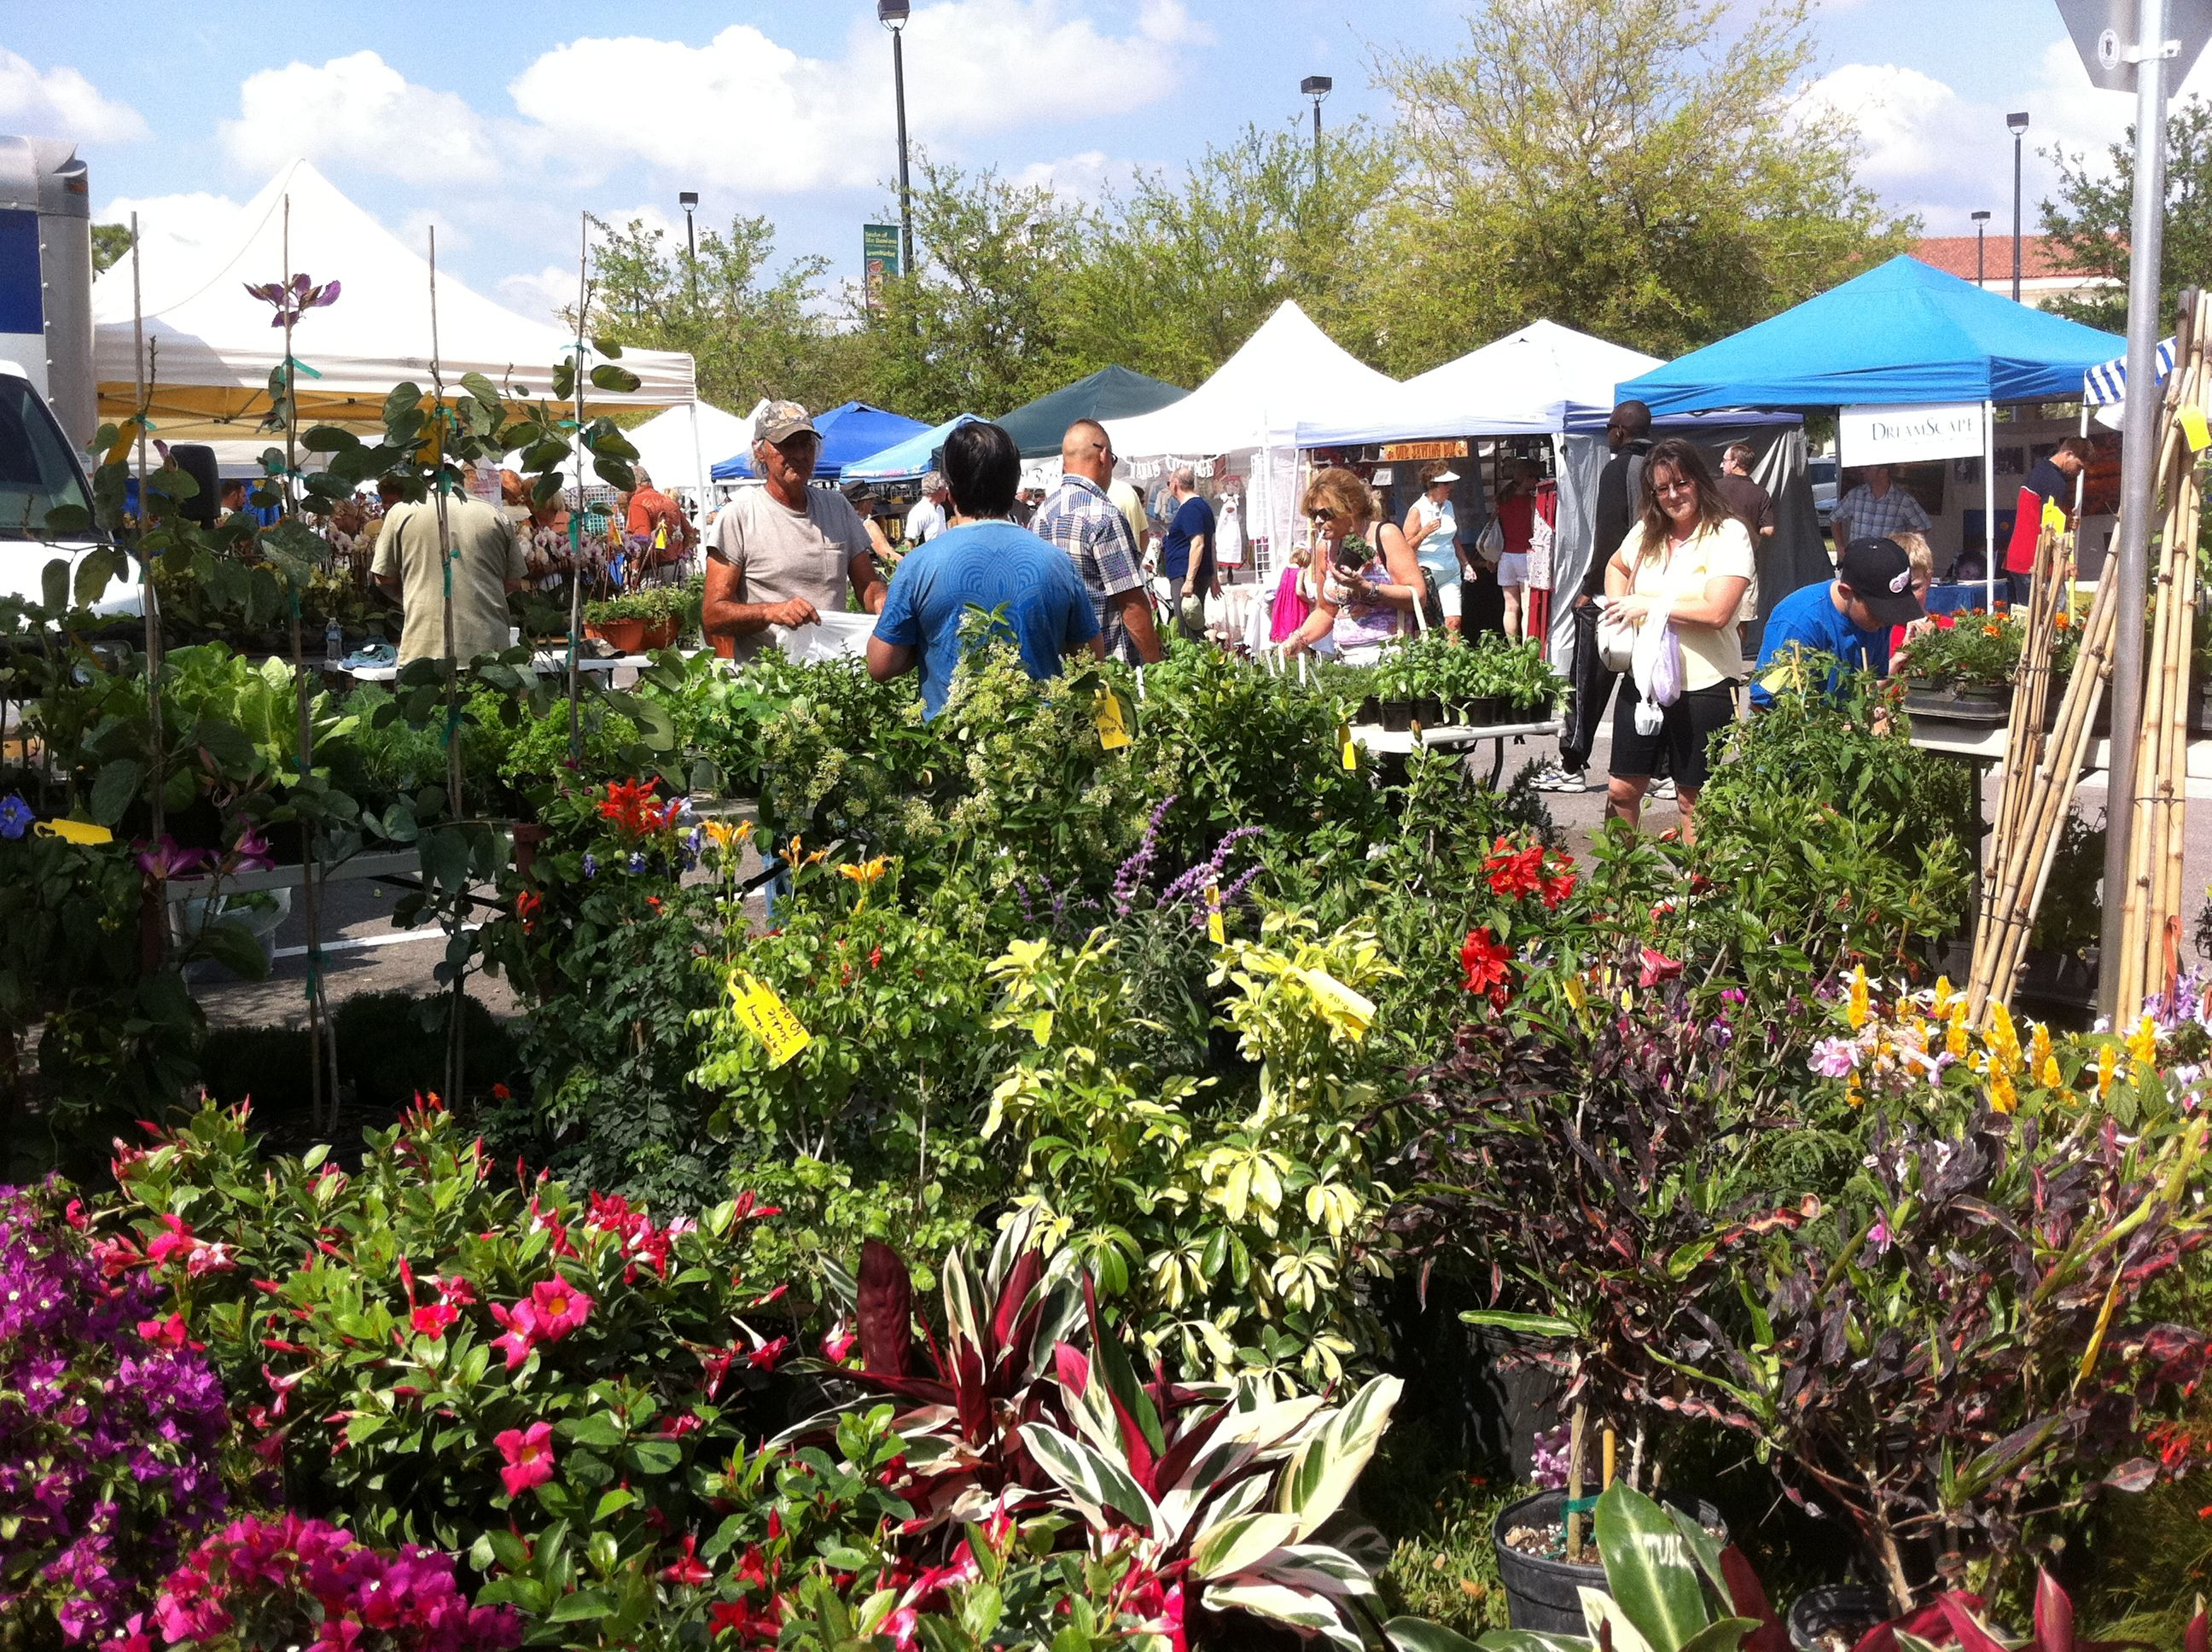 Palm Beach Gardens Green Market held every Sunday from 8 am to 1 pm ...